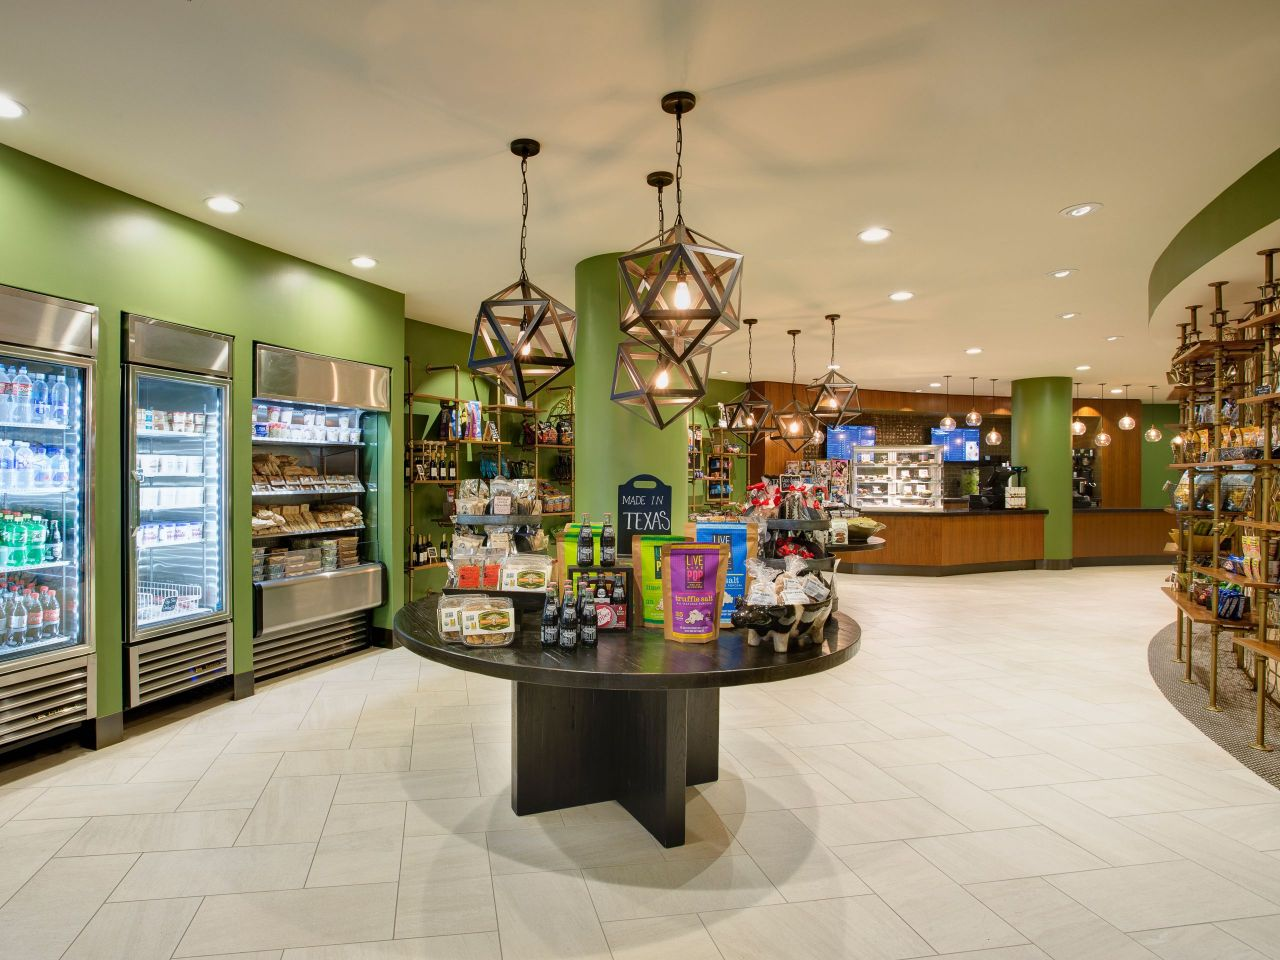 Beverage refrigerators and retail displays in store